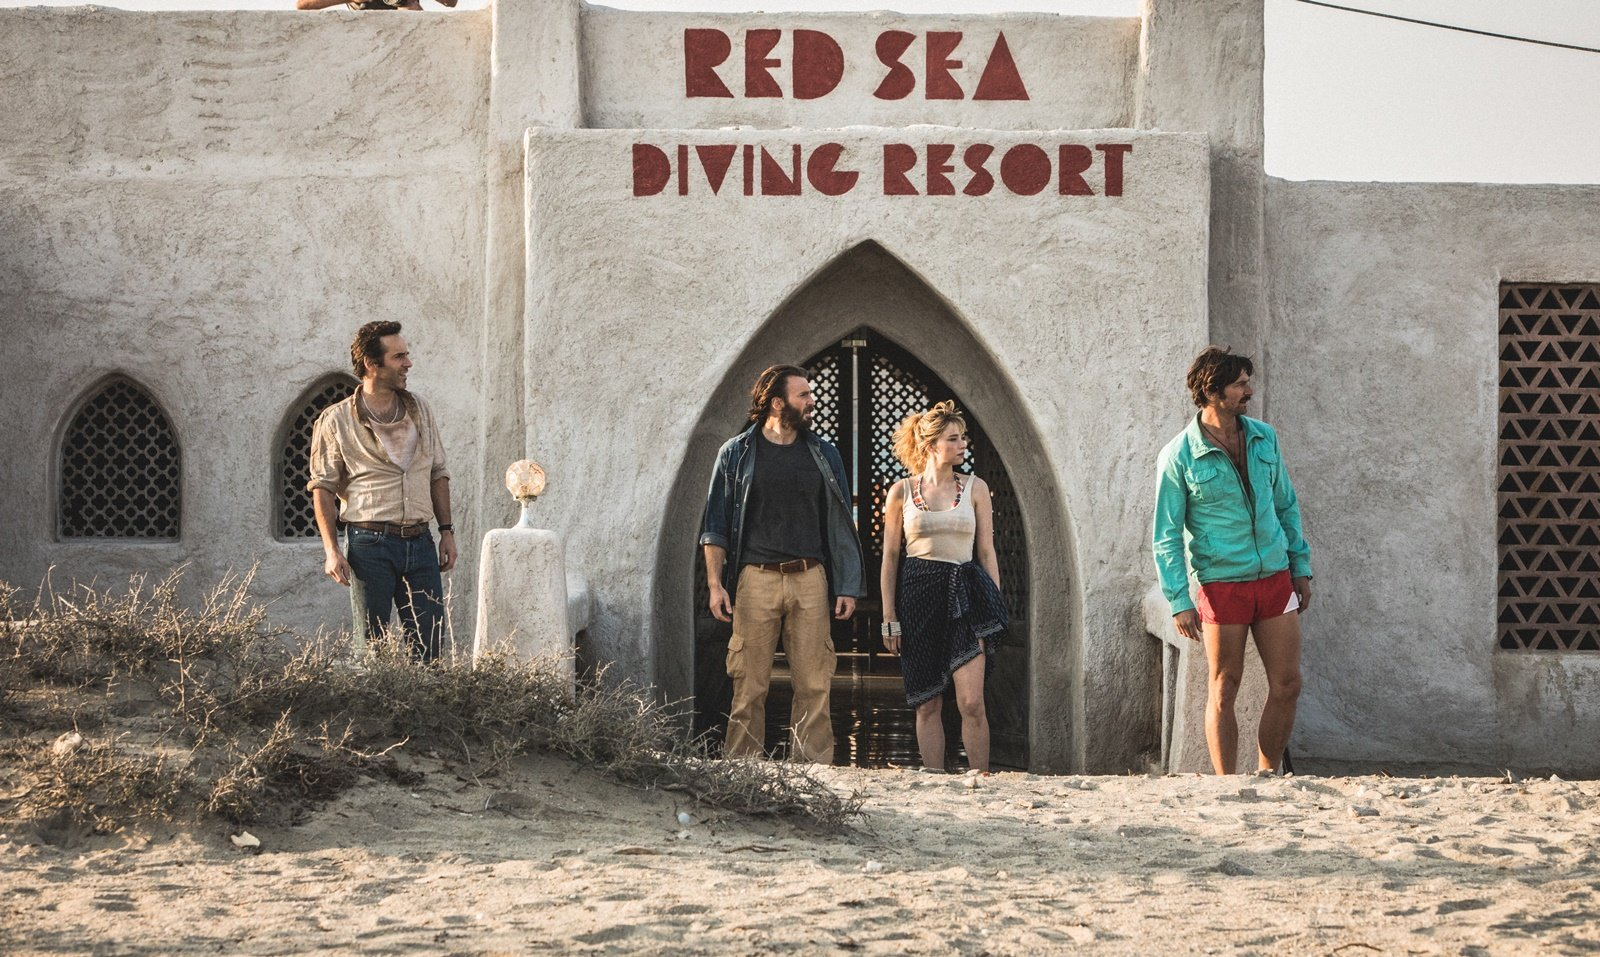 Red Sea Diving Resort premiered on Netflix on July 31, 2019